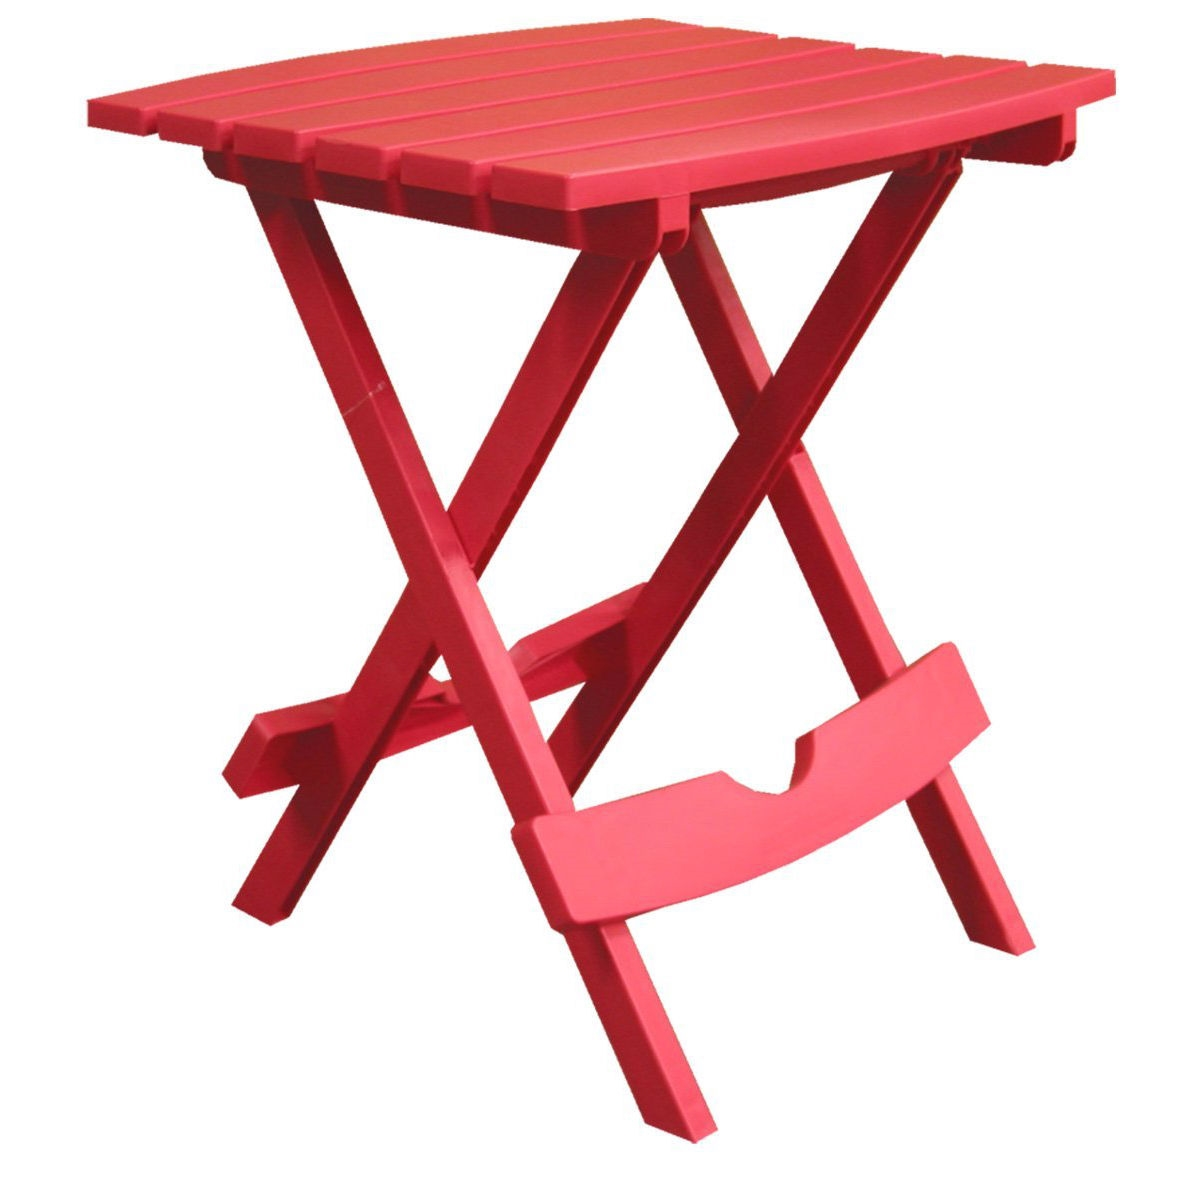 Exceptional Fing Side Table Cherry Red Durable Fing Side Table Canada Fing Side Table Camping Outdoor Patio Lawn Outdoor Patio Lawn Cherry Red Durable Resin Fing Side Table houzz-03 Folding Side Table